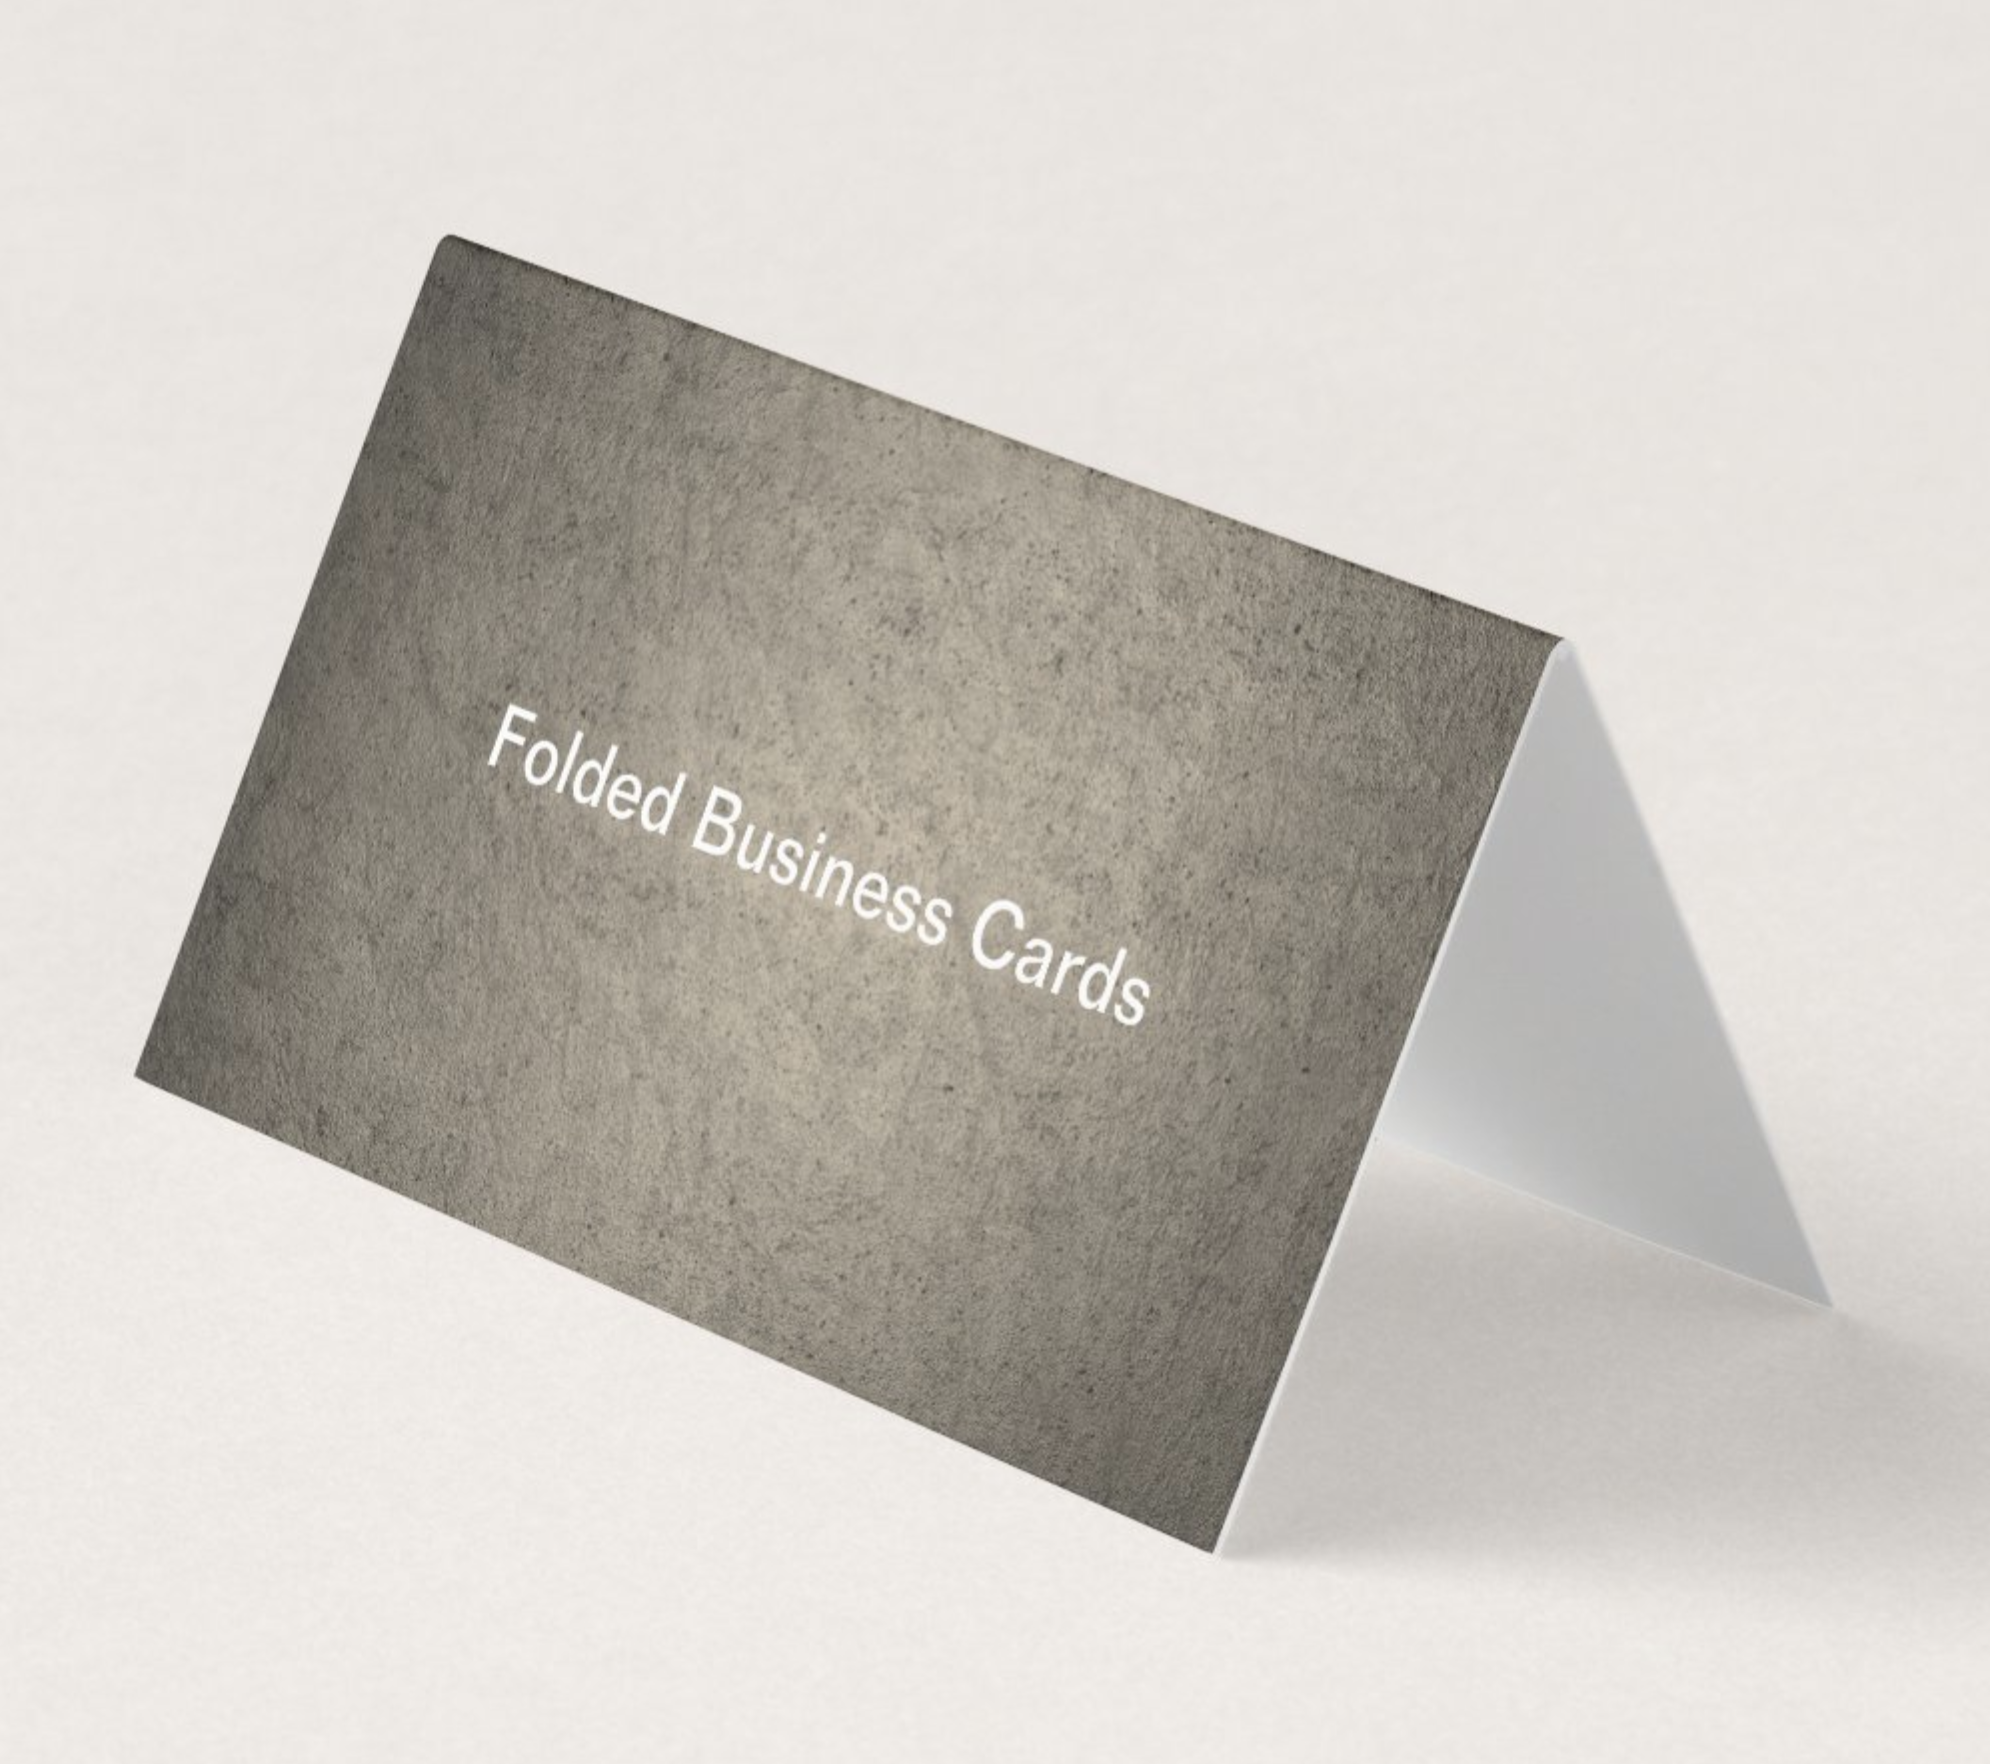 Premium Quality Foldover Business Cards